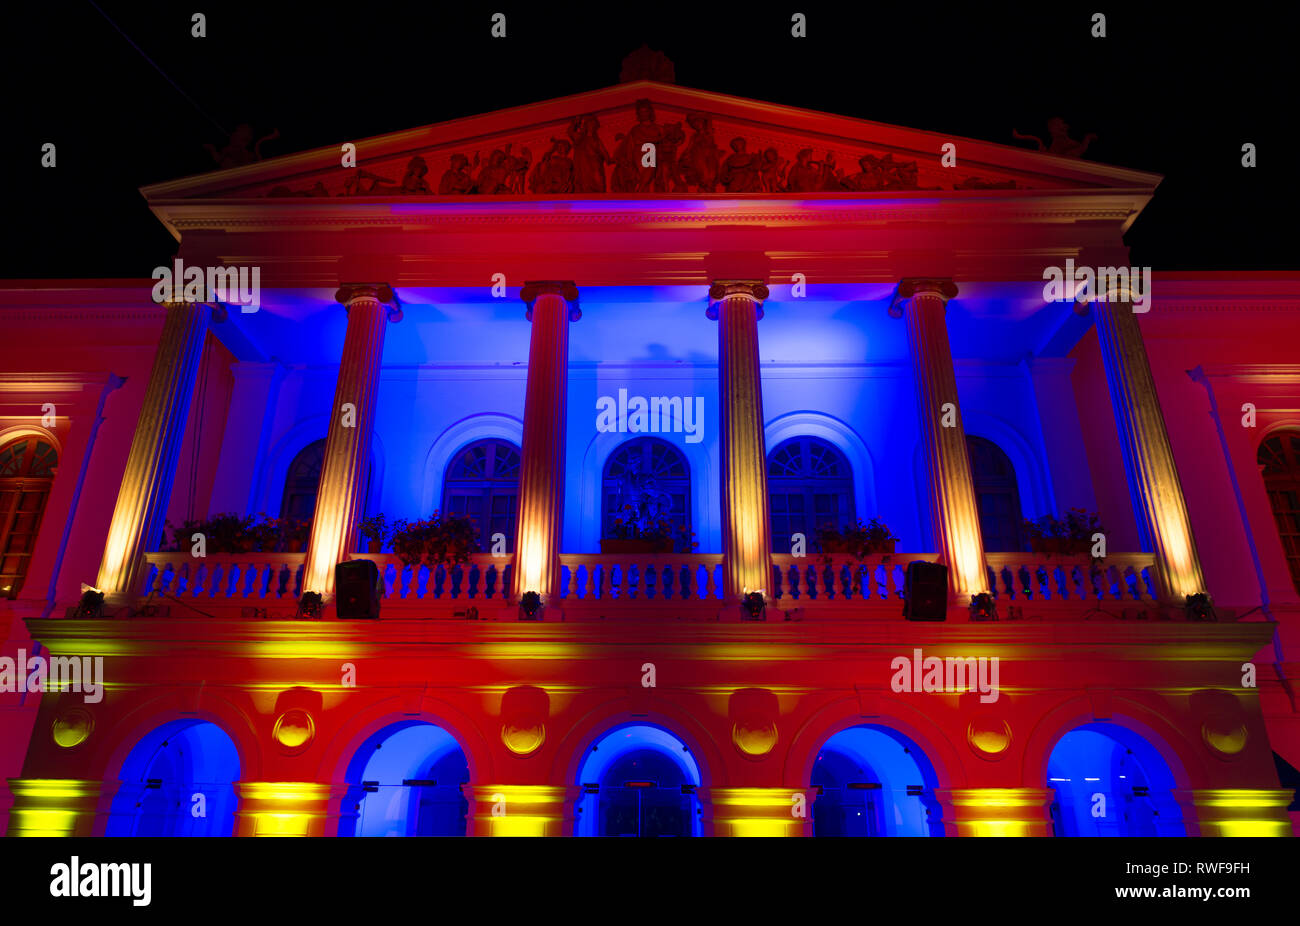 The Sucre theater illuminated with red, yellow and blue colours in the historic city center of Quito, Ecuador. - Stock Image